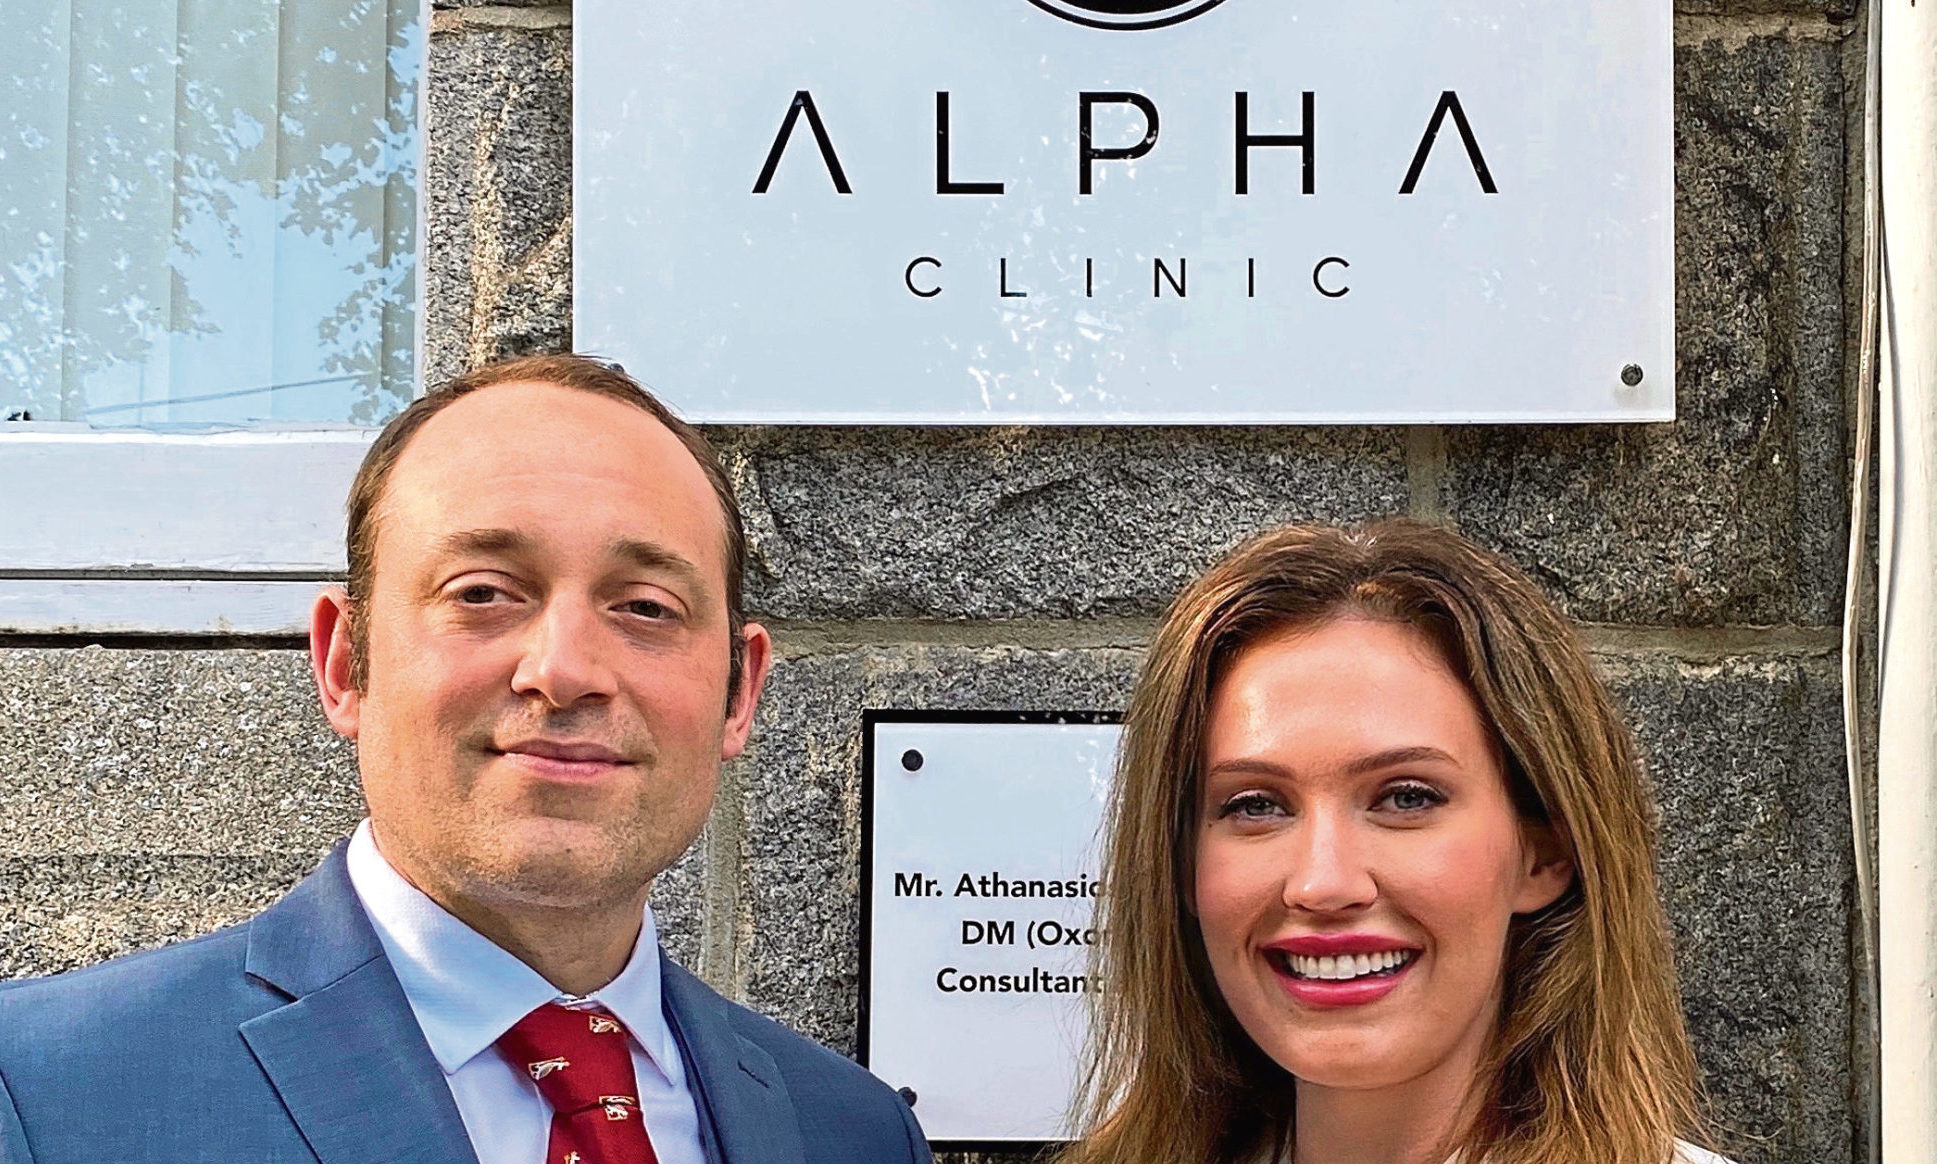 Leah and Thanassi Athanassopoulos, of Alpha Clinic